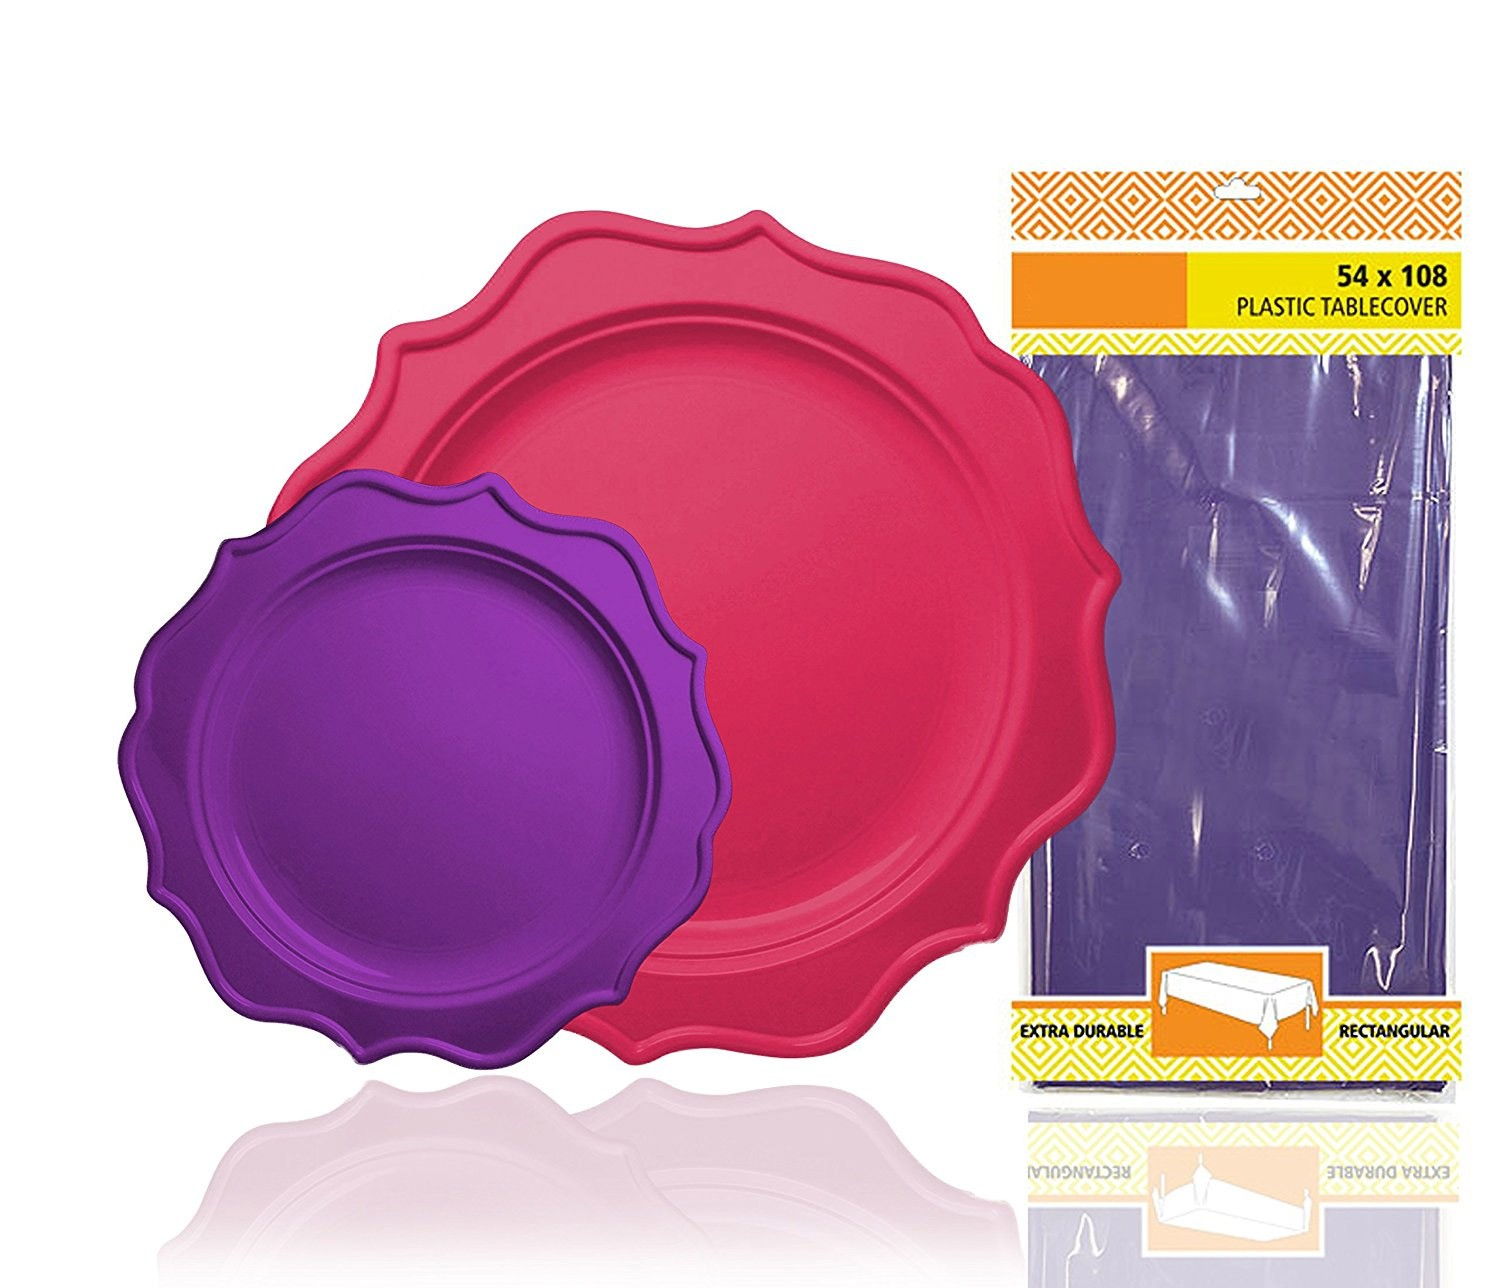 TigerChef Heavy Duty Purple and Hot Pink Scalloped Rim Disposable Party Plates Set with Tablecloth - Service ...  sc 1 st  TigerChef & TigerChef Heavy Duty Purple and Hot Pink Scalloped Rim Disposable ...